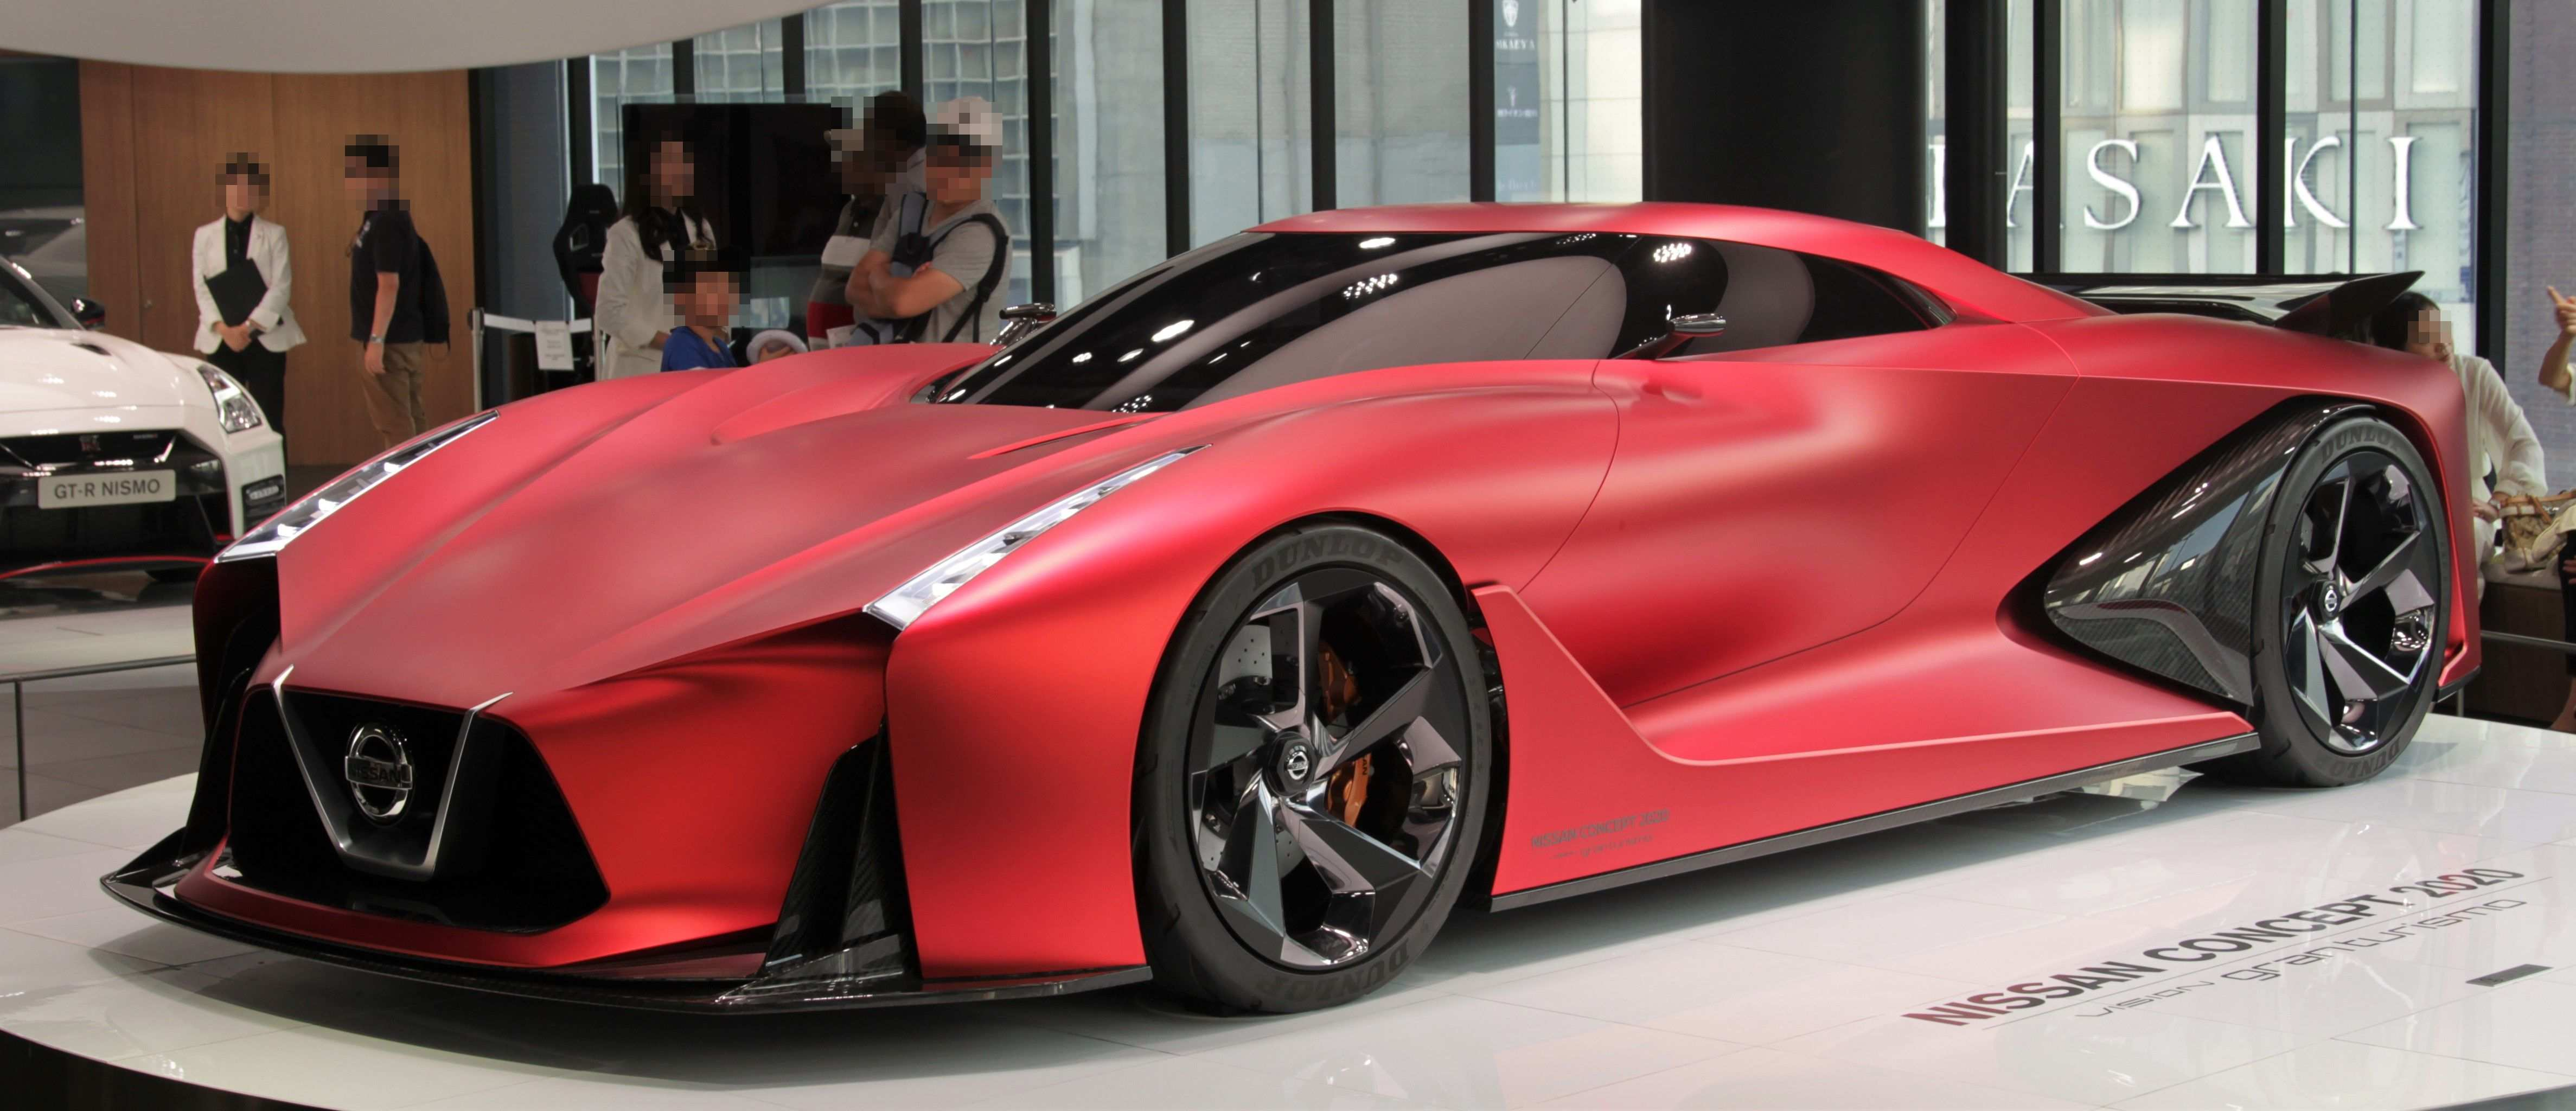 33 The Best 2020 Nissan Gran Turismo Overview